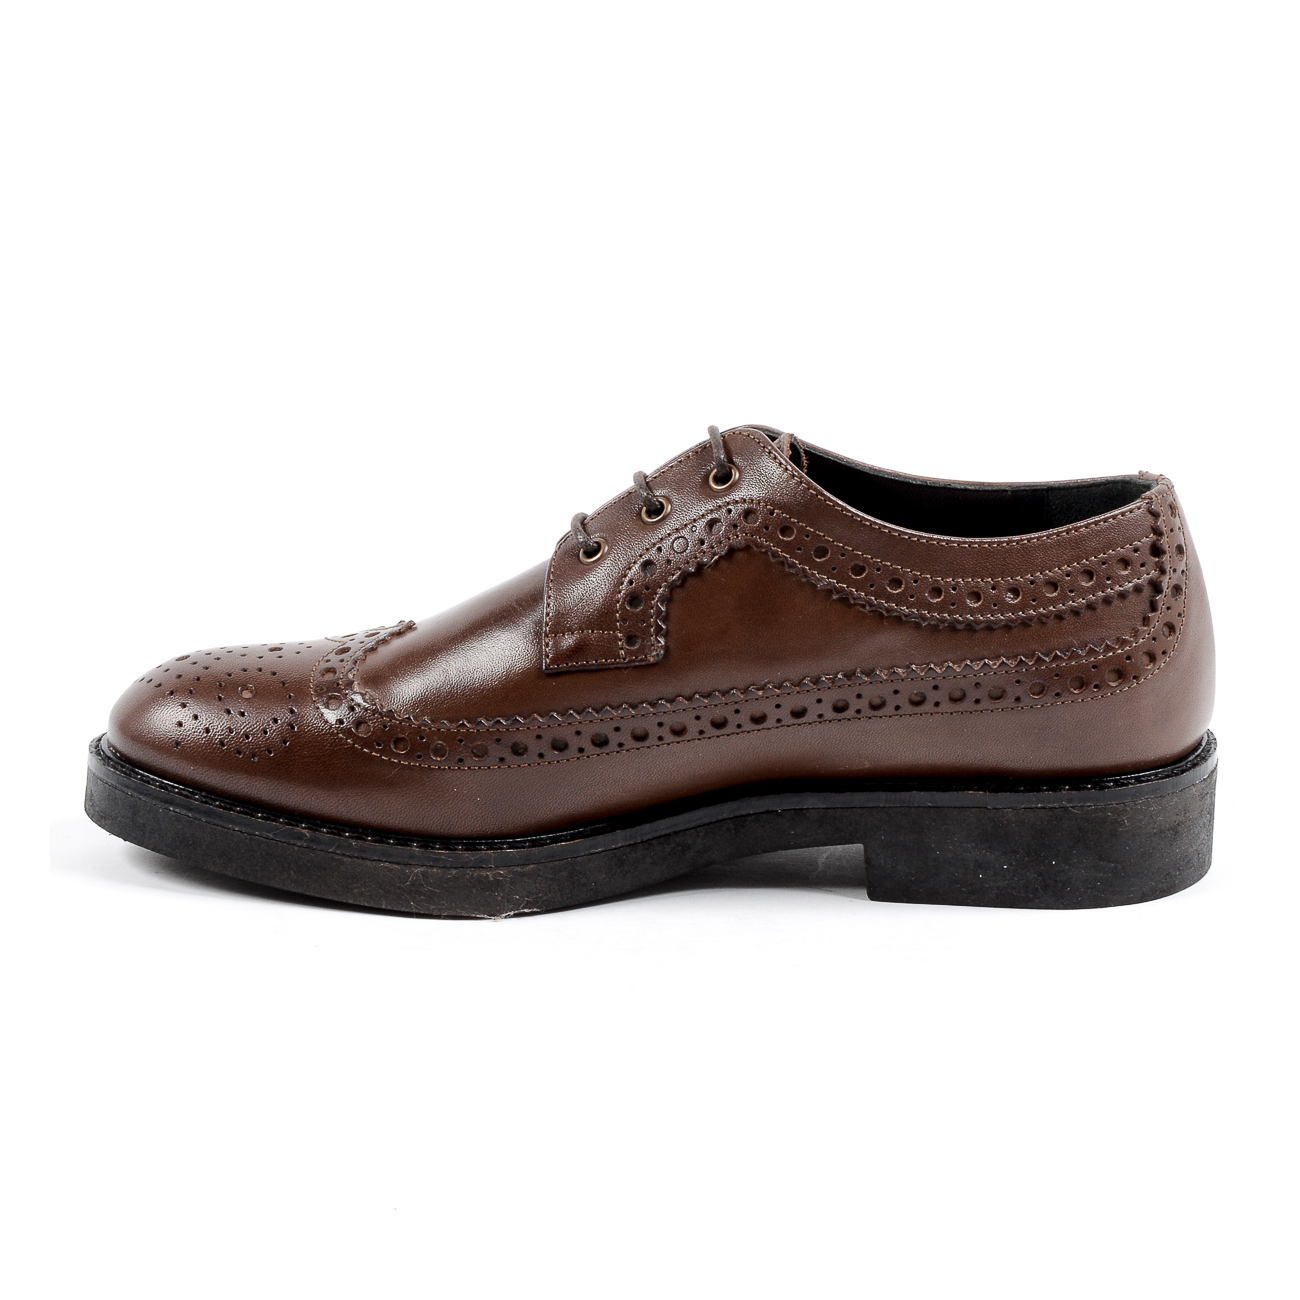 V 1969 Italia Womens Brogue Shoe Brown TRENTO